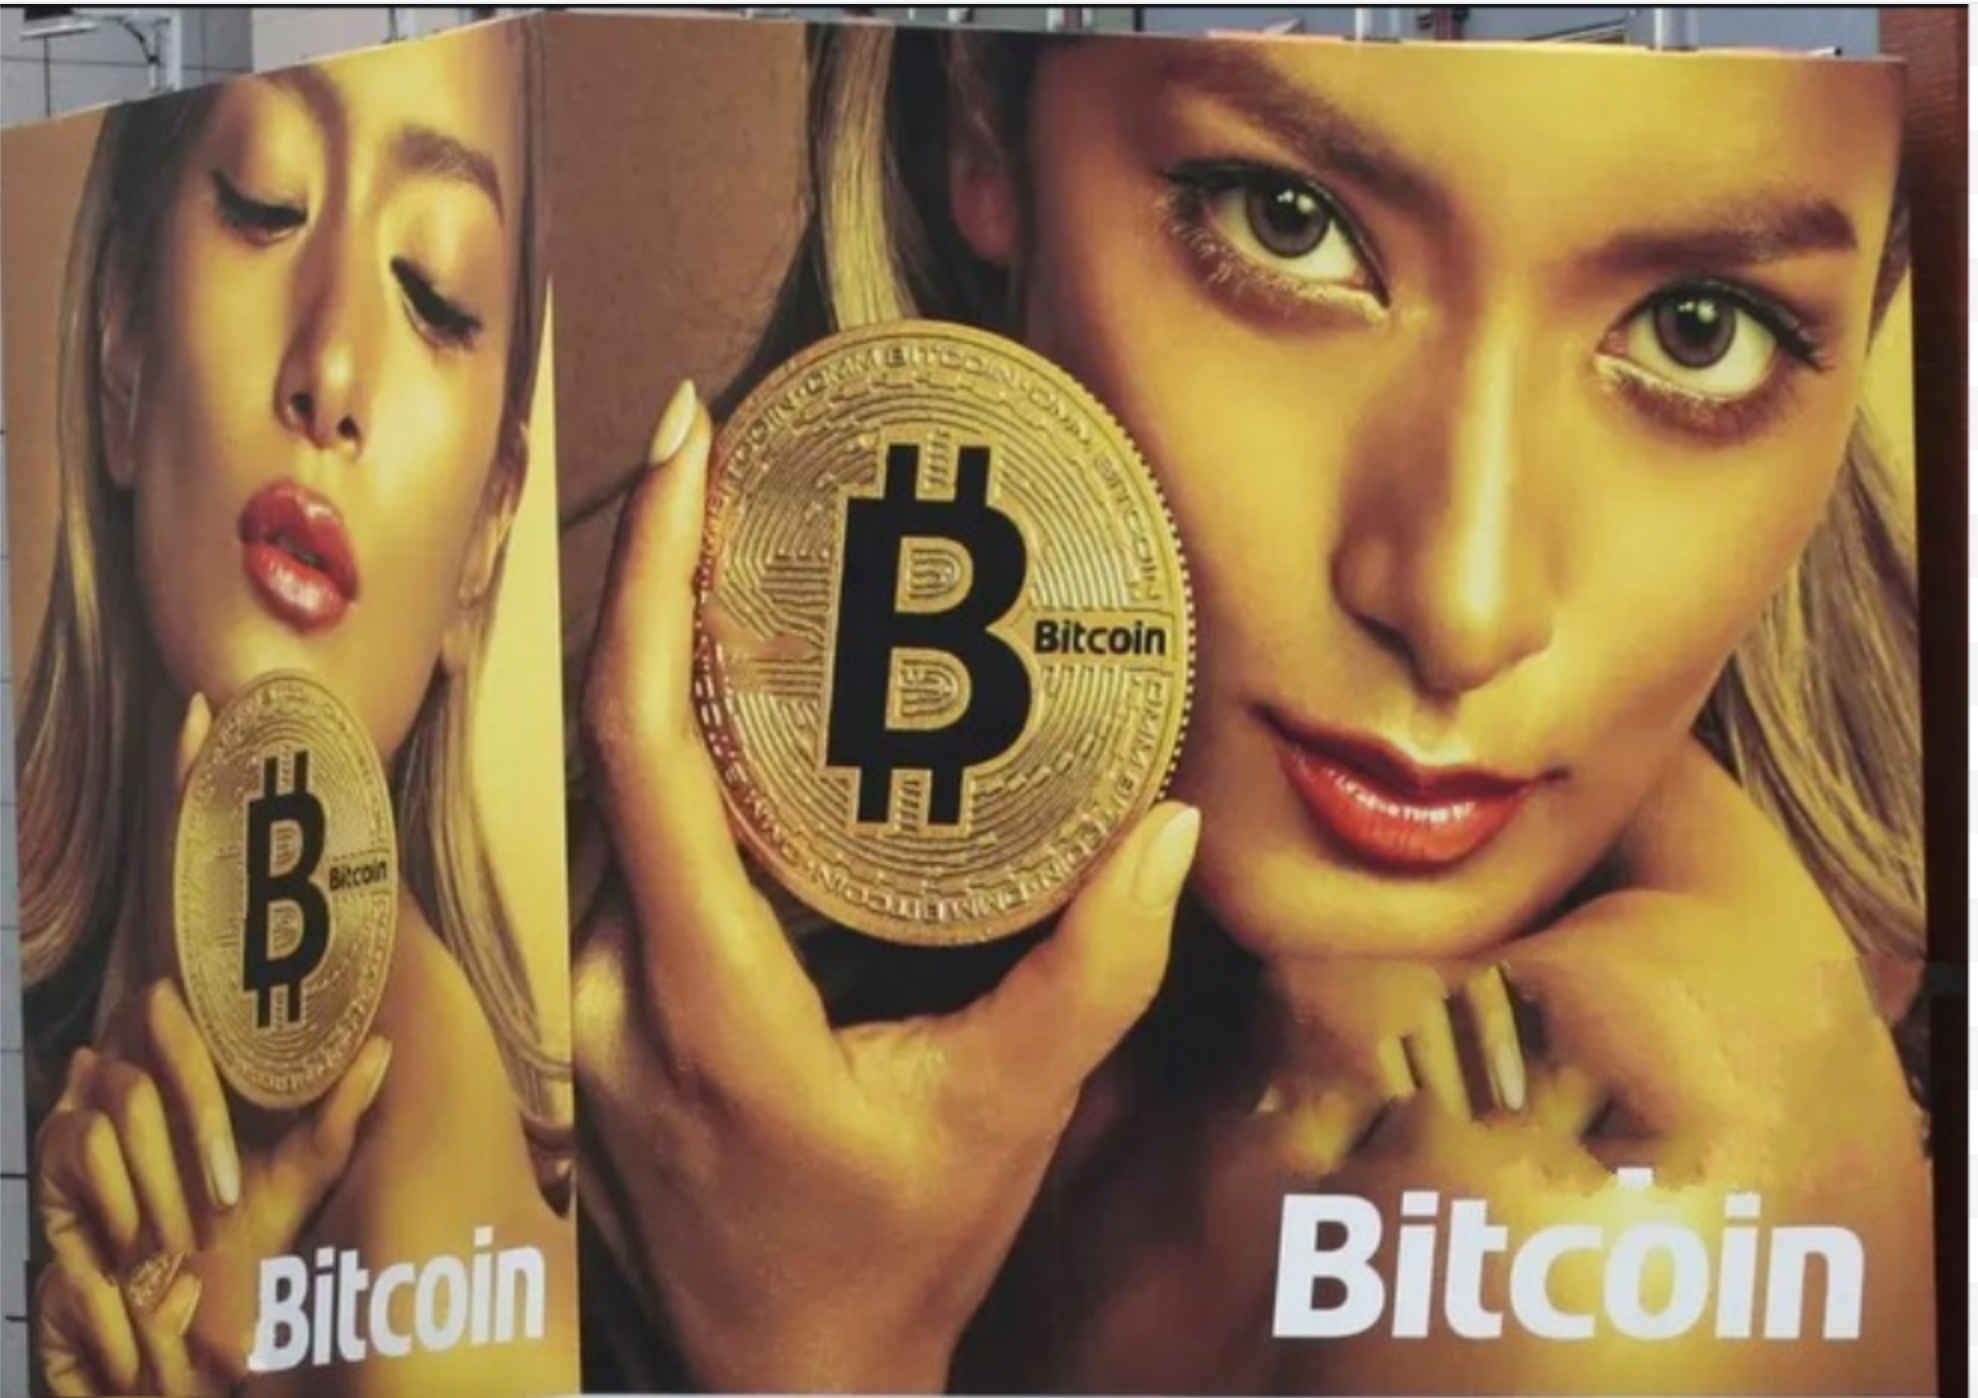 Only 14% of women involved in Bitcoin: Are Women Afraid of Bitcoin?